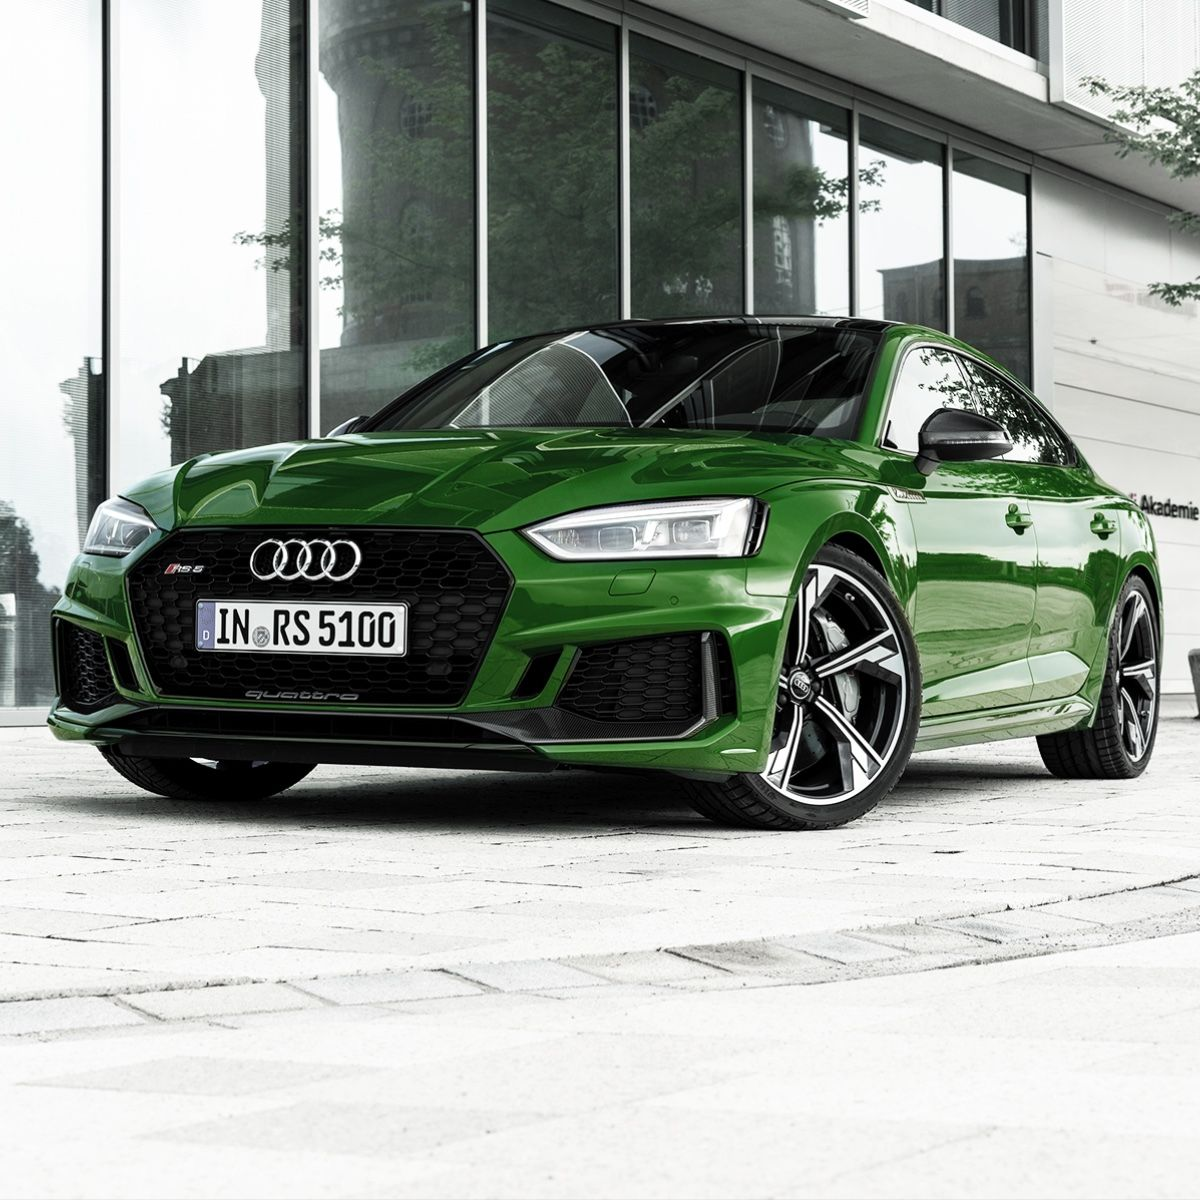 Heavy Loaded The Audi Rs 5 Sportback In Sonoma Green Audi